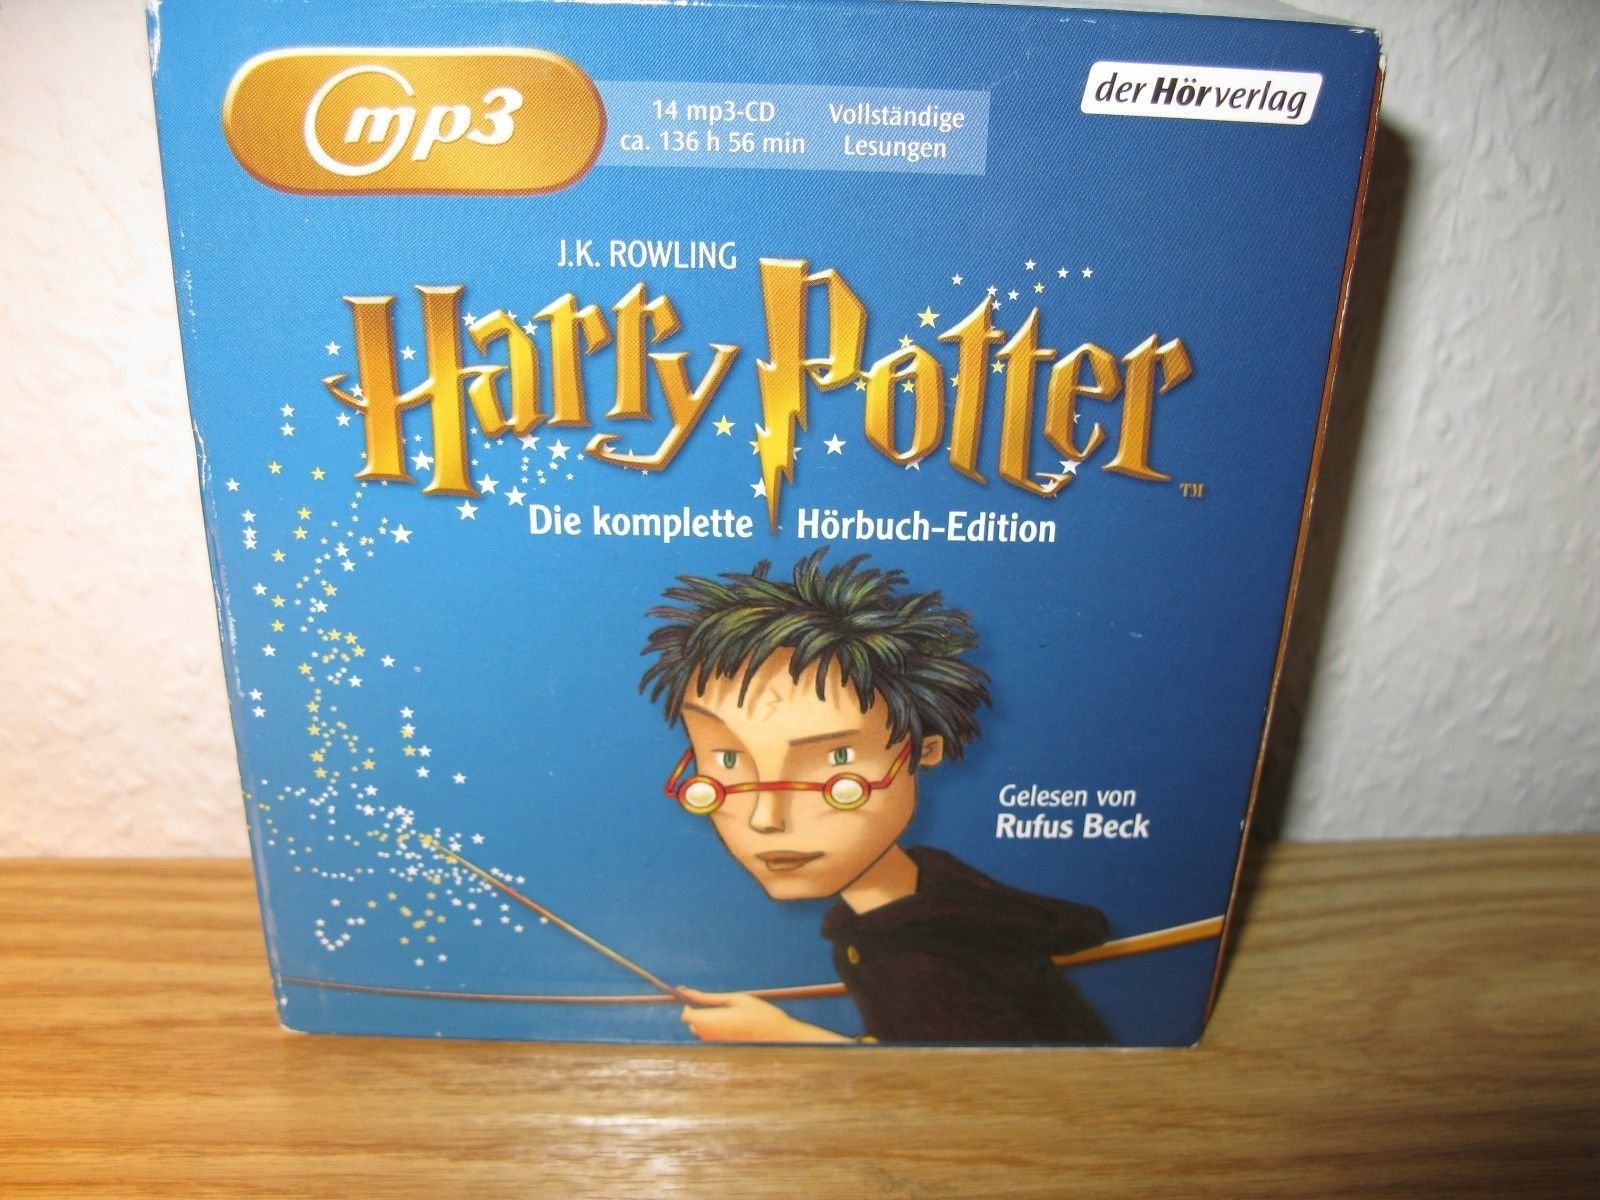 Harry Potter mp3, die komplette Hörbuch Edition 14 mp3 Audio-CDs fast 137 Std.